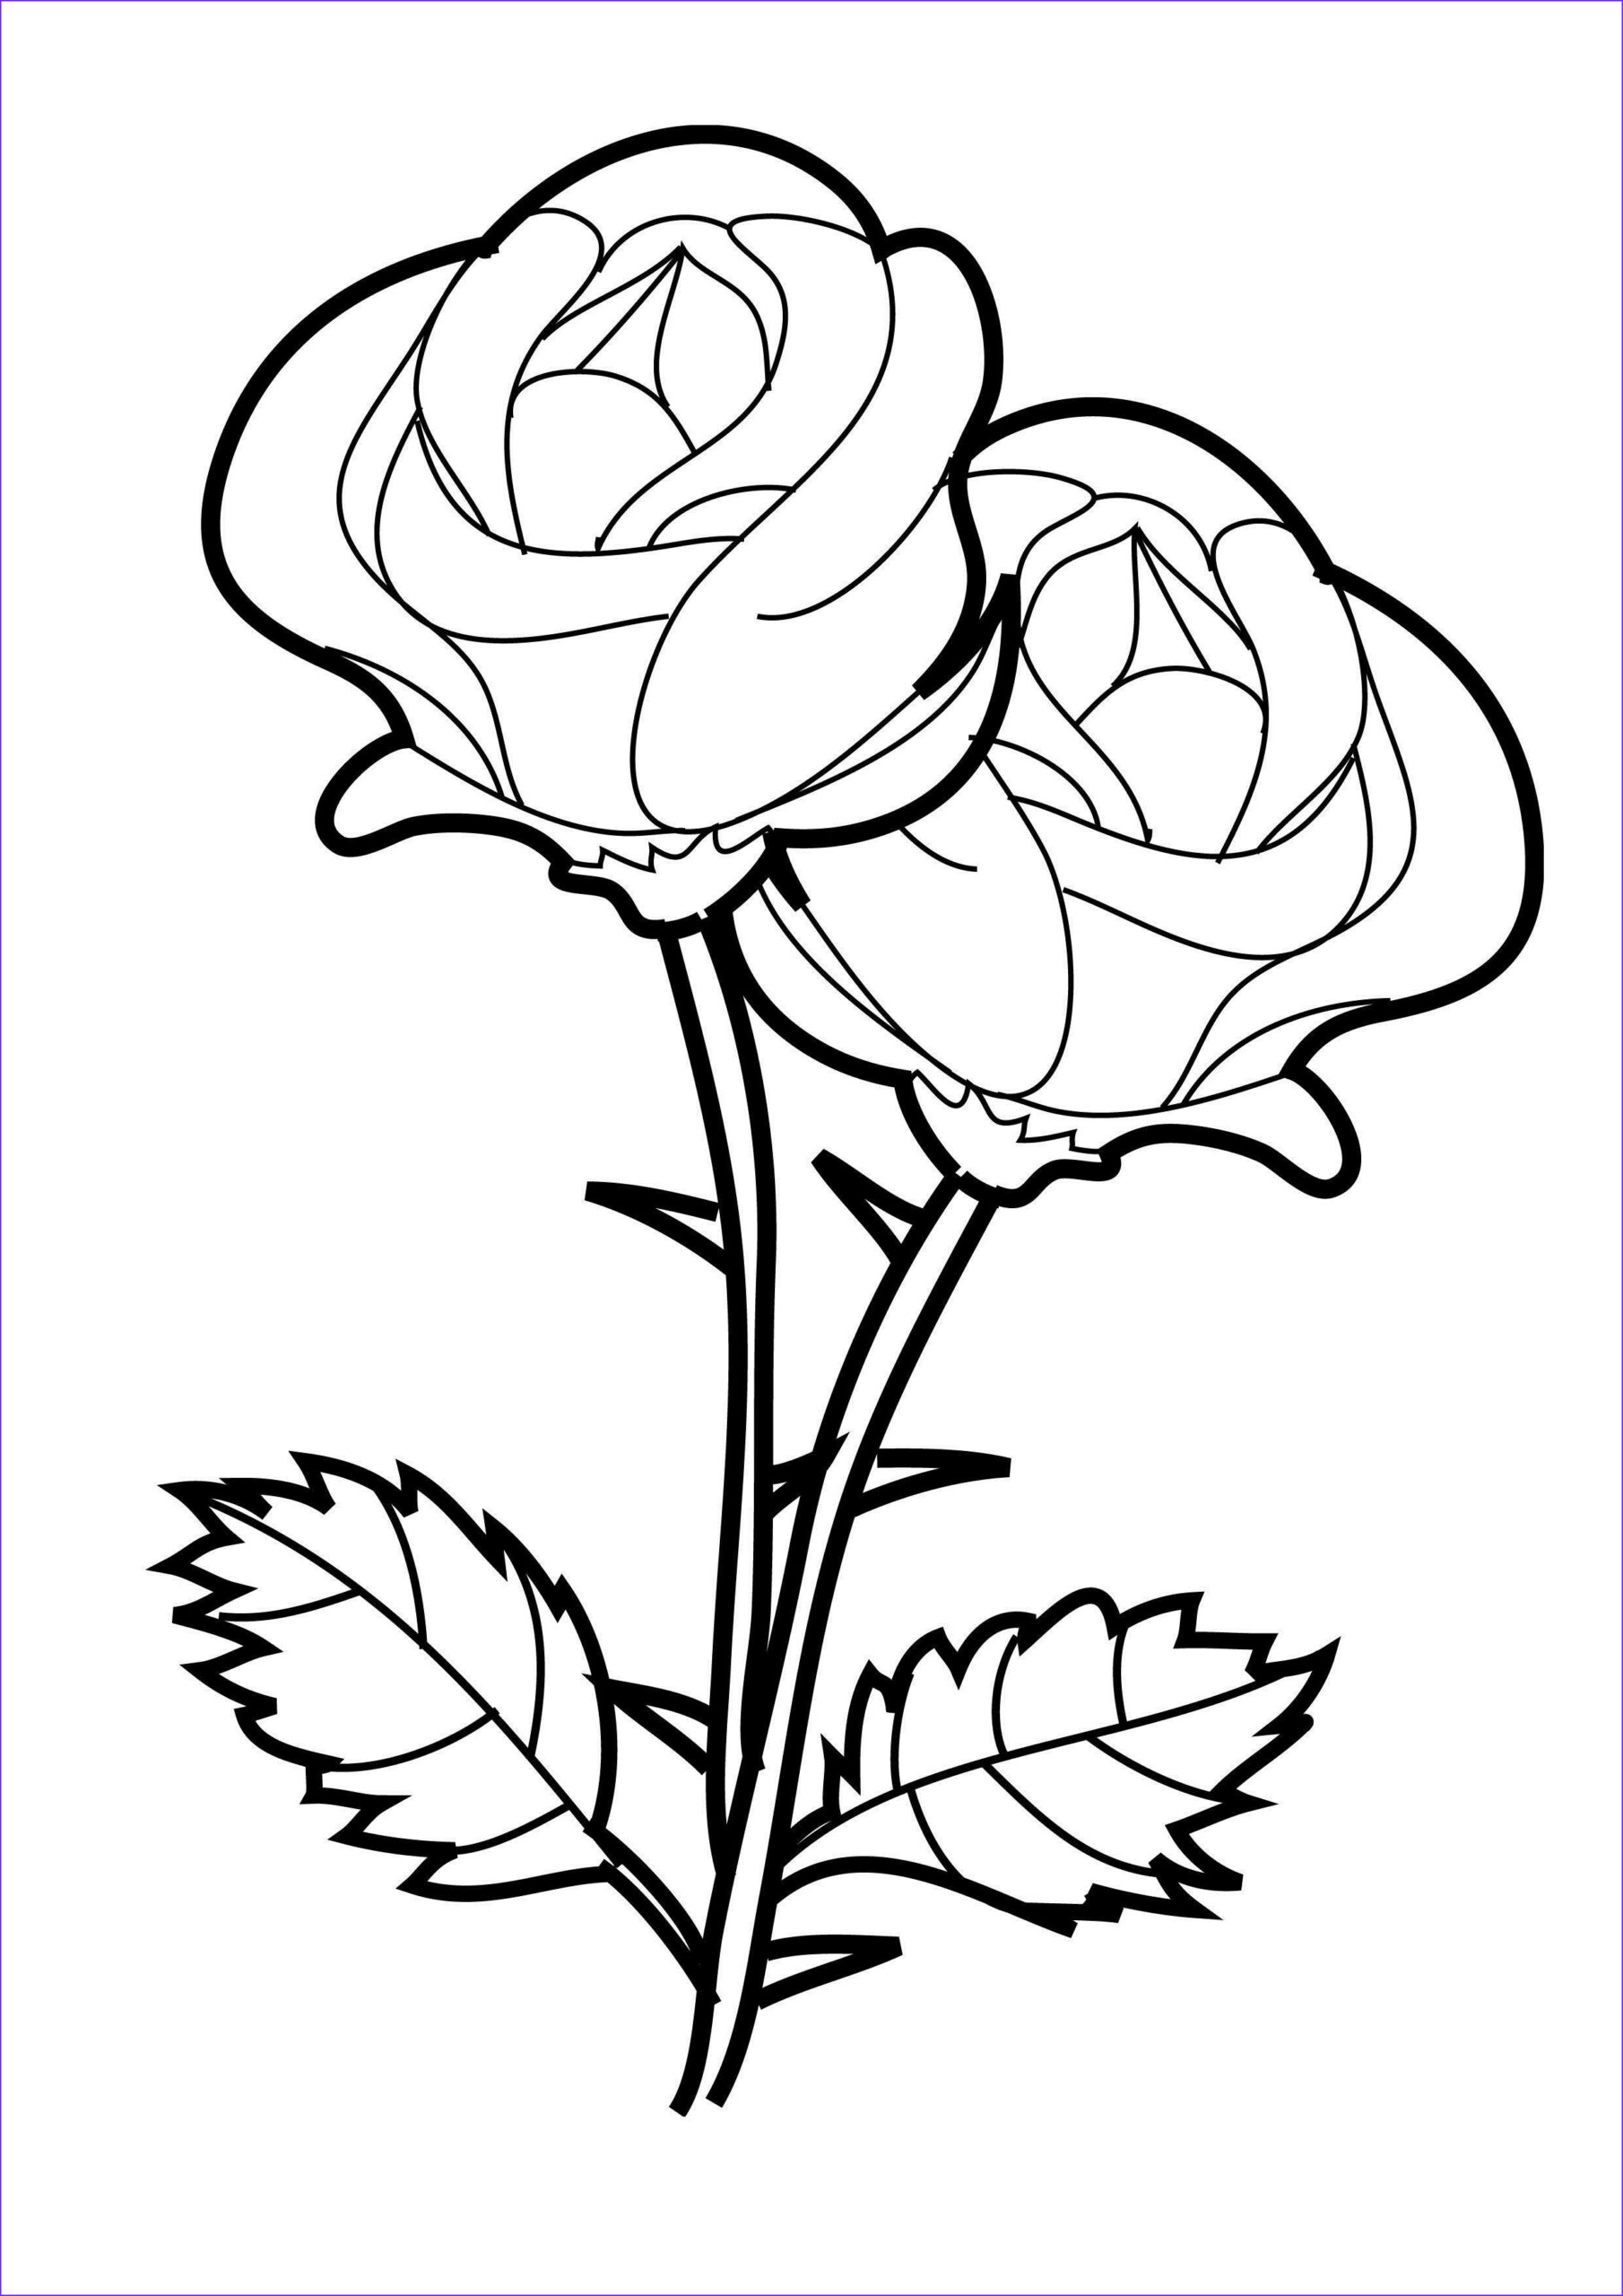 Coloring Pages for Flowers Elegant Images Flower Coloring Pages Crosses